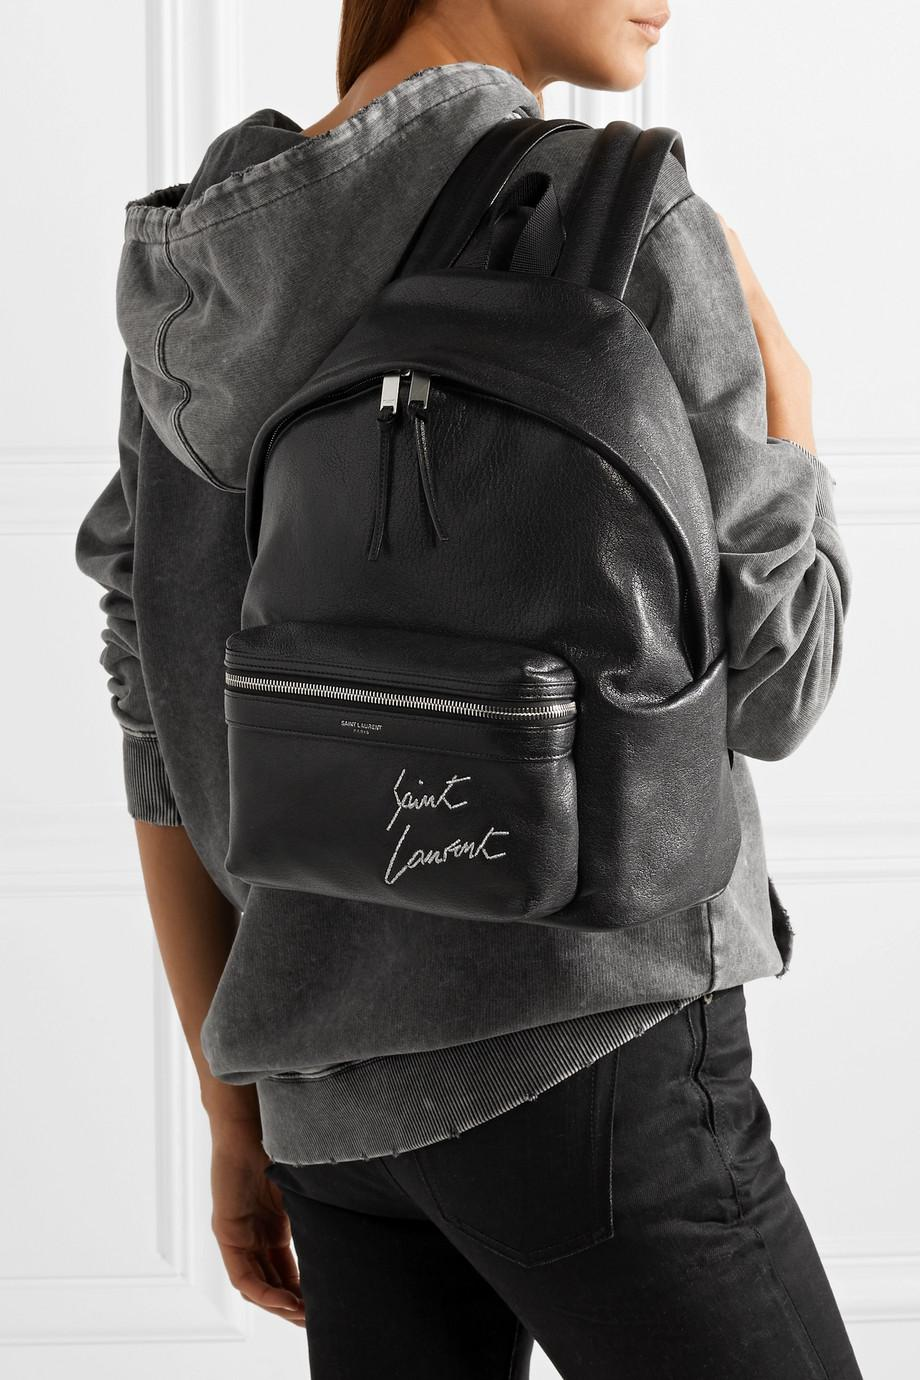 5a5883bf2 Mini Toy City Embroidered Backpack In Black Leather- Fenix Toulouse ...